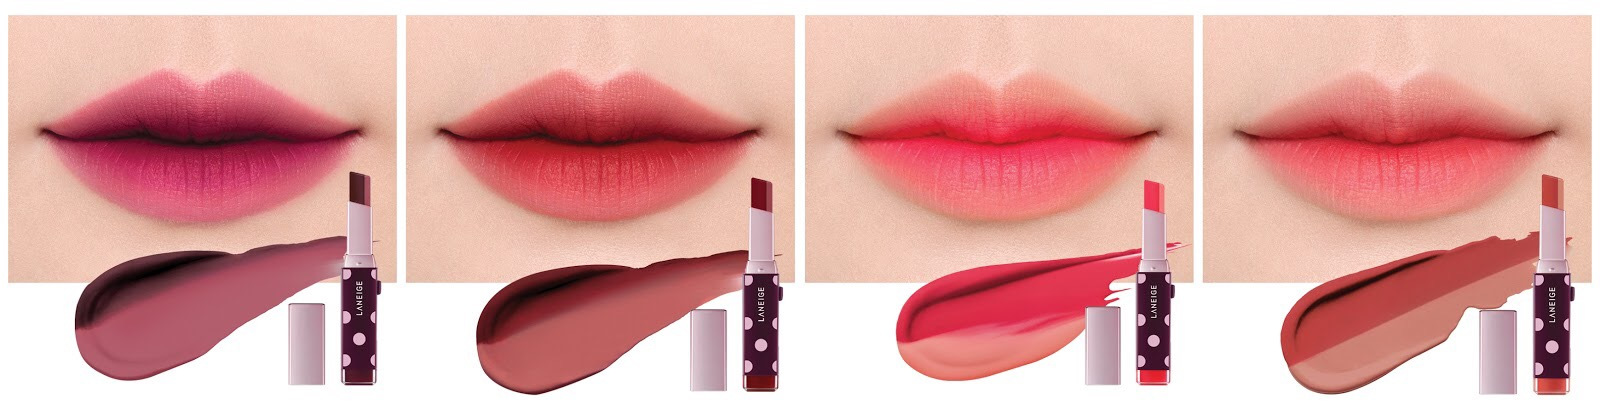 http://shopdep24h.com/images/Son-moi/Laneige-Two-Tone-Matte-Lip-Bar/two-tone-matte-lip-bar-laneige.jpg